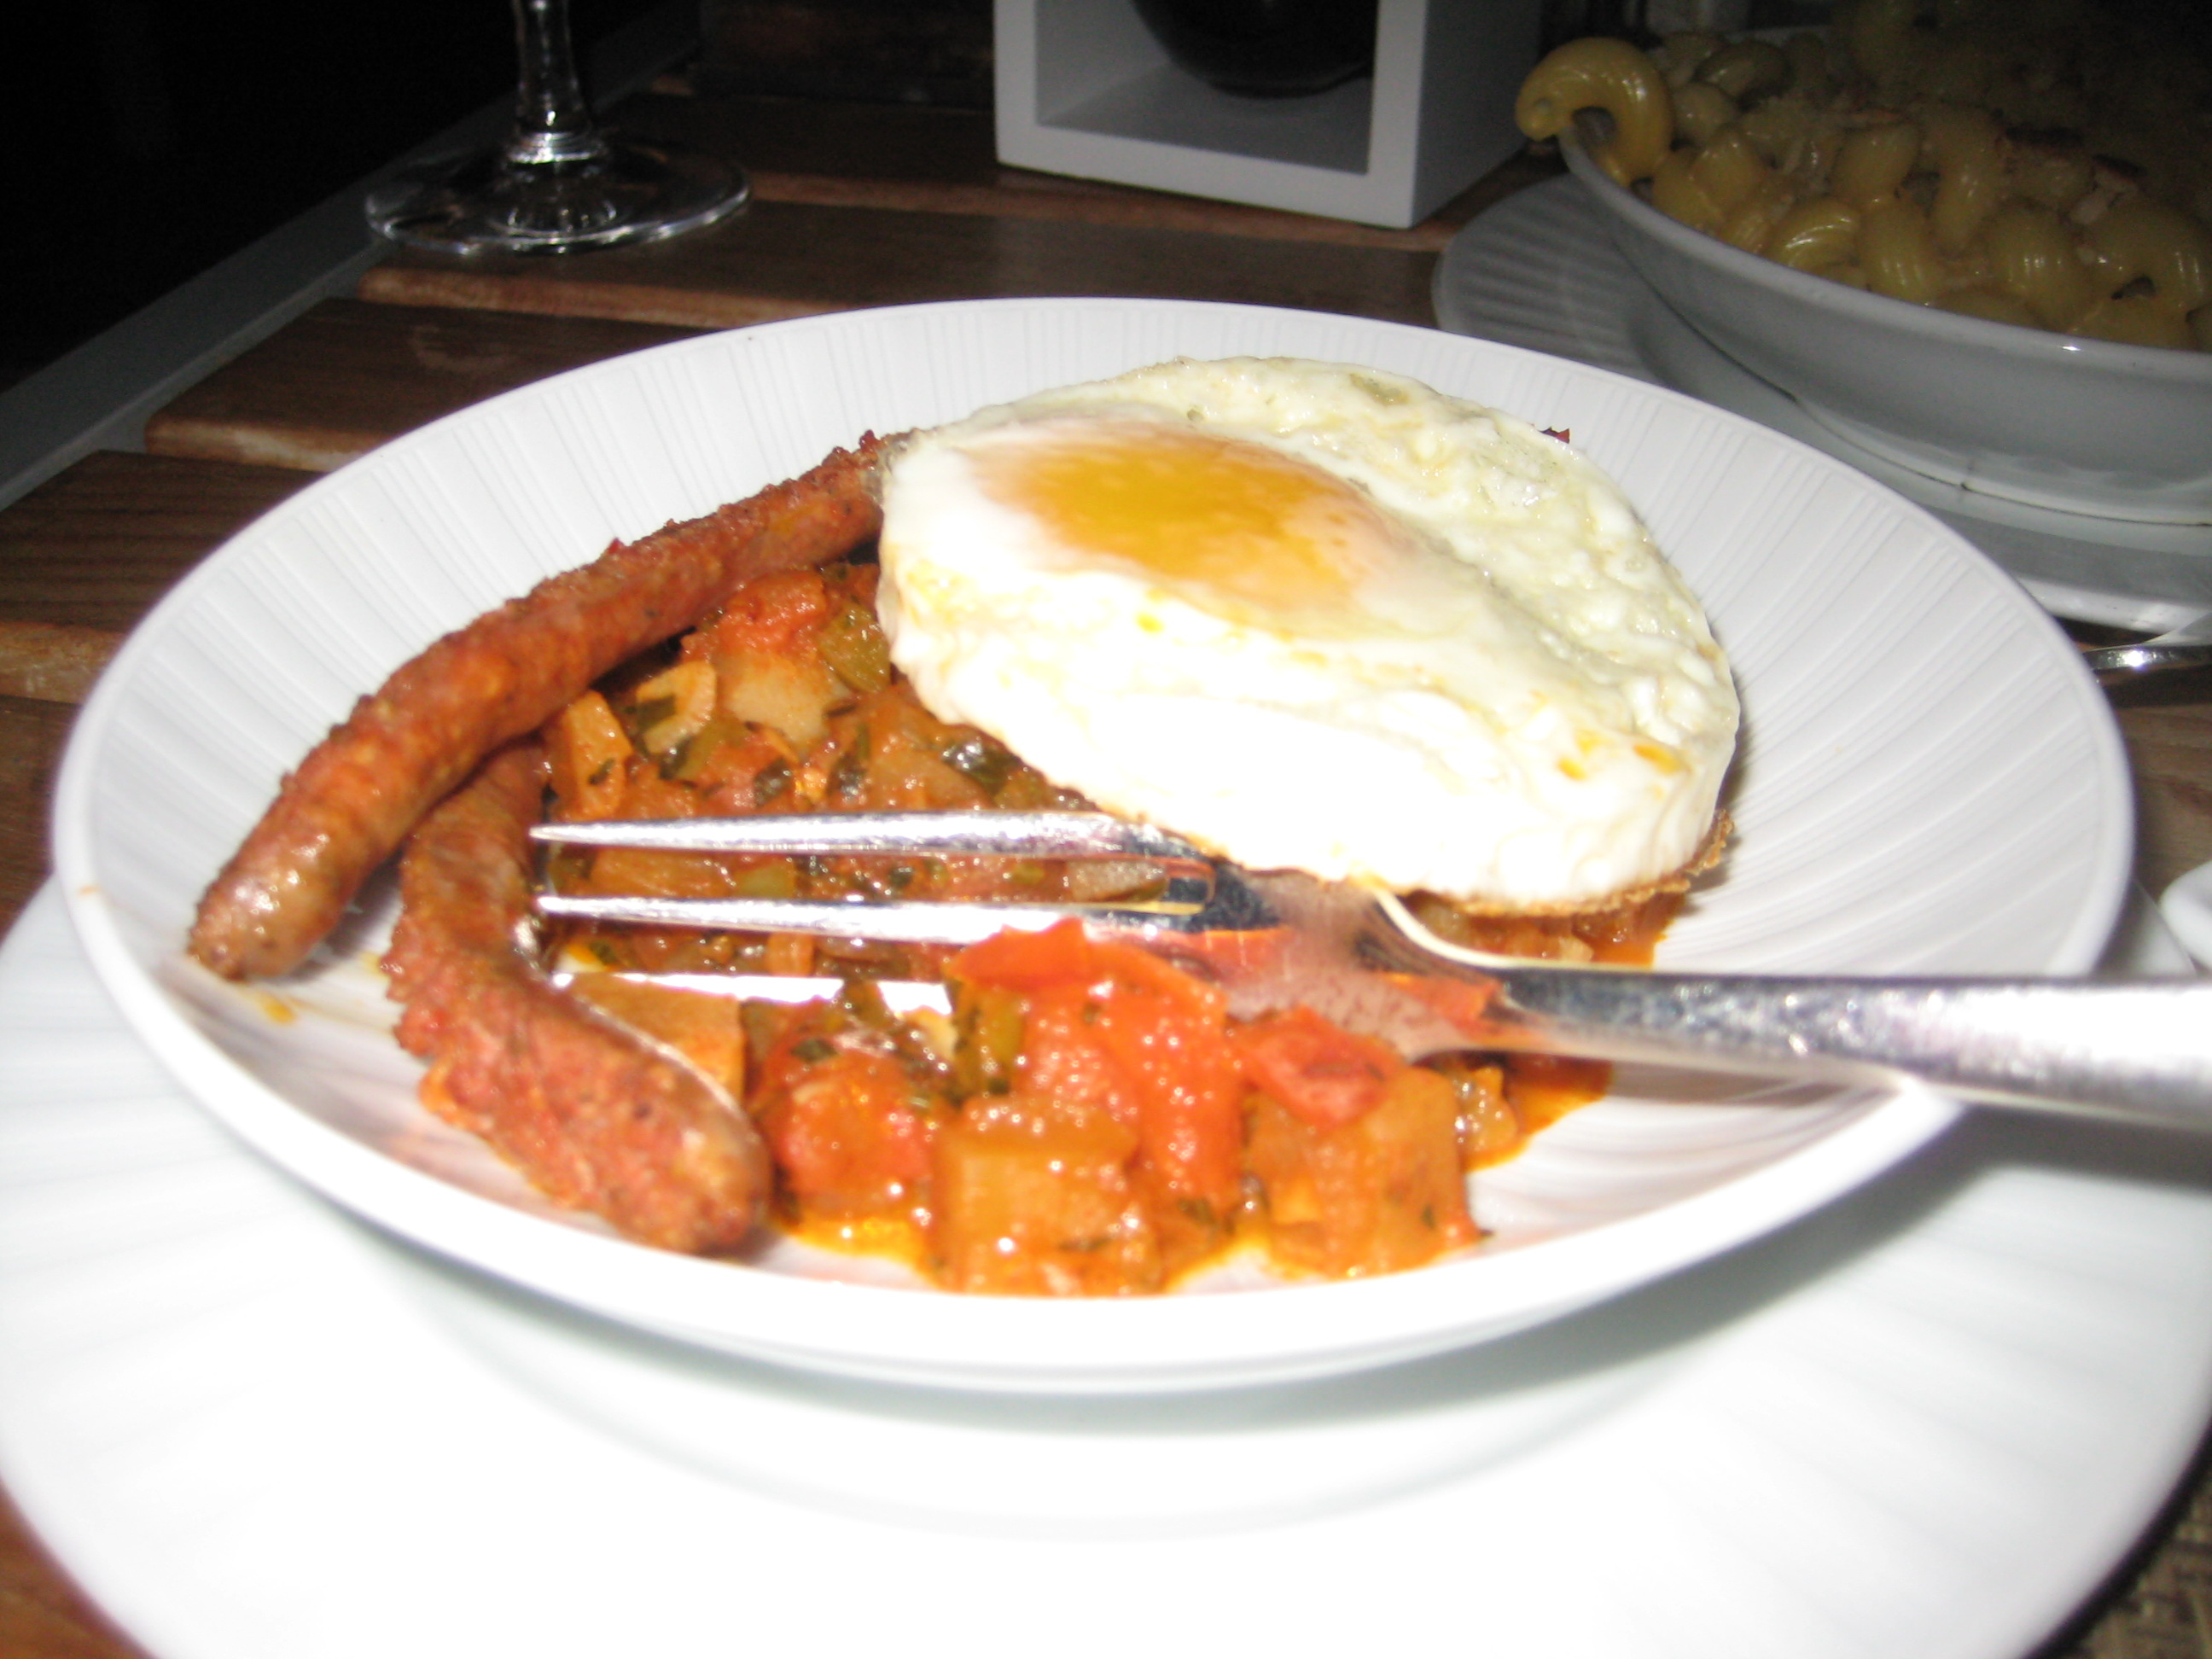 One of the hot tapas items at Neomi's at The Trump Int'l